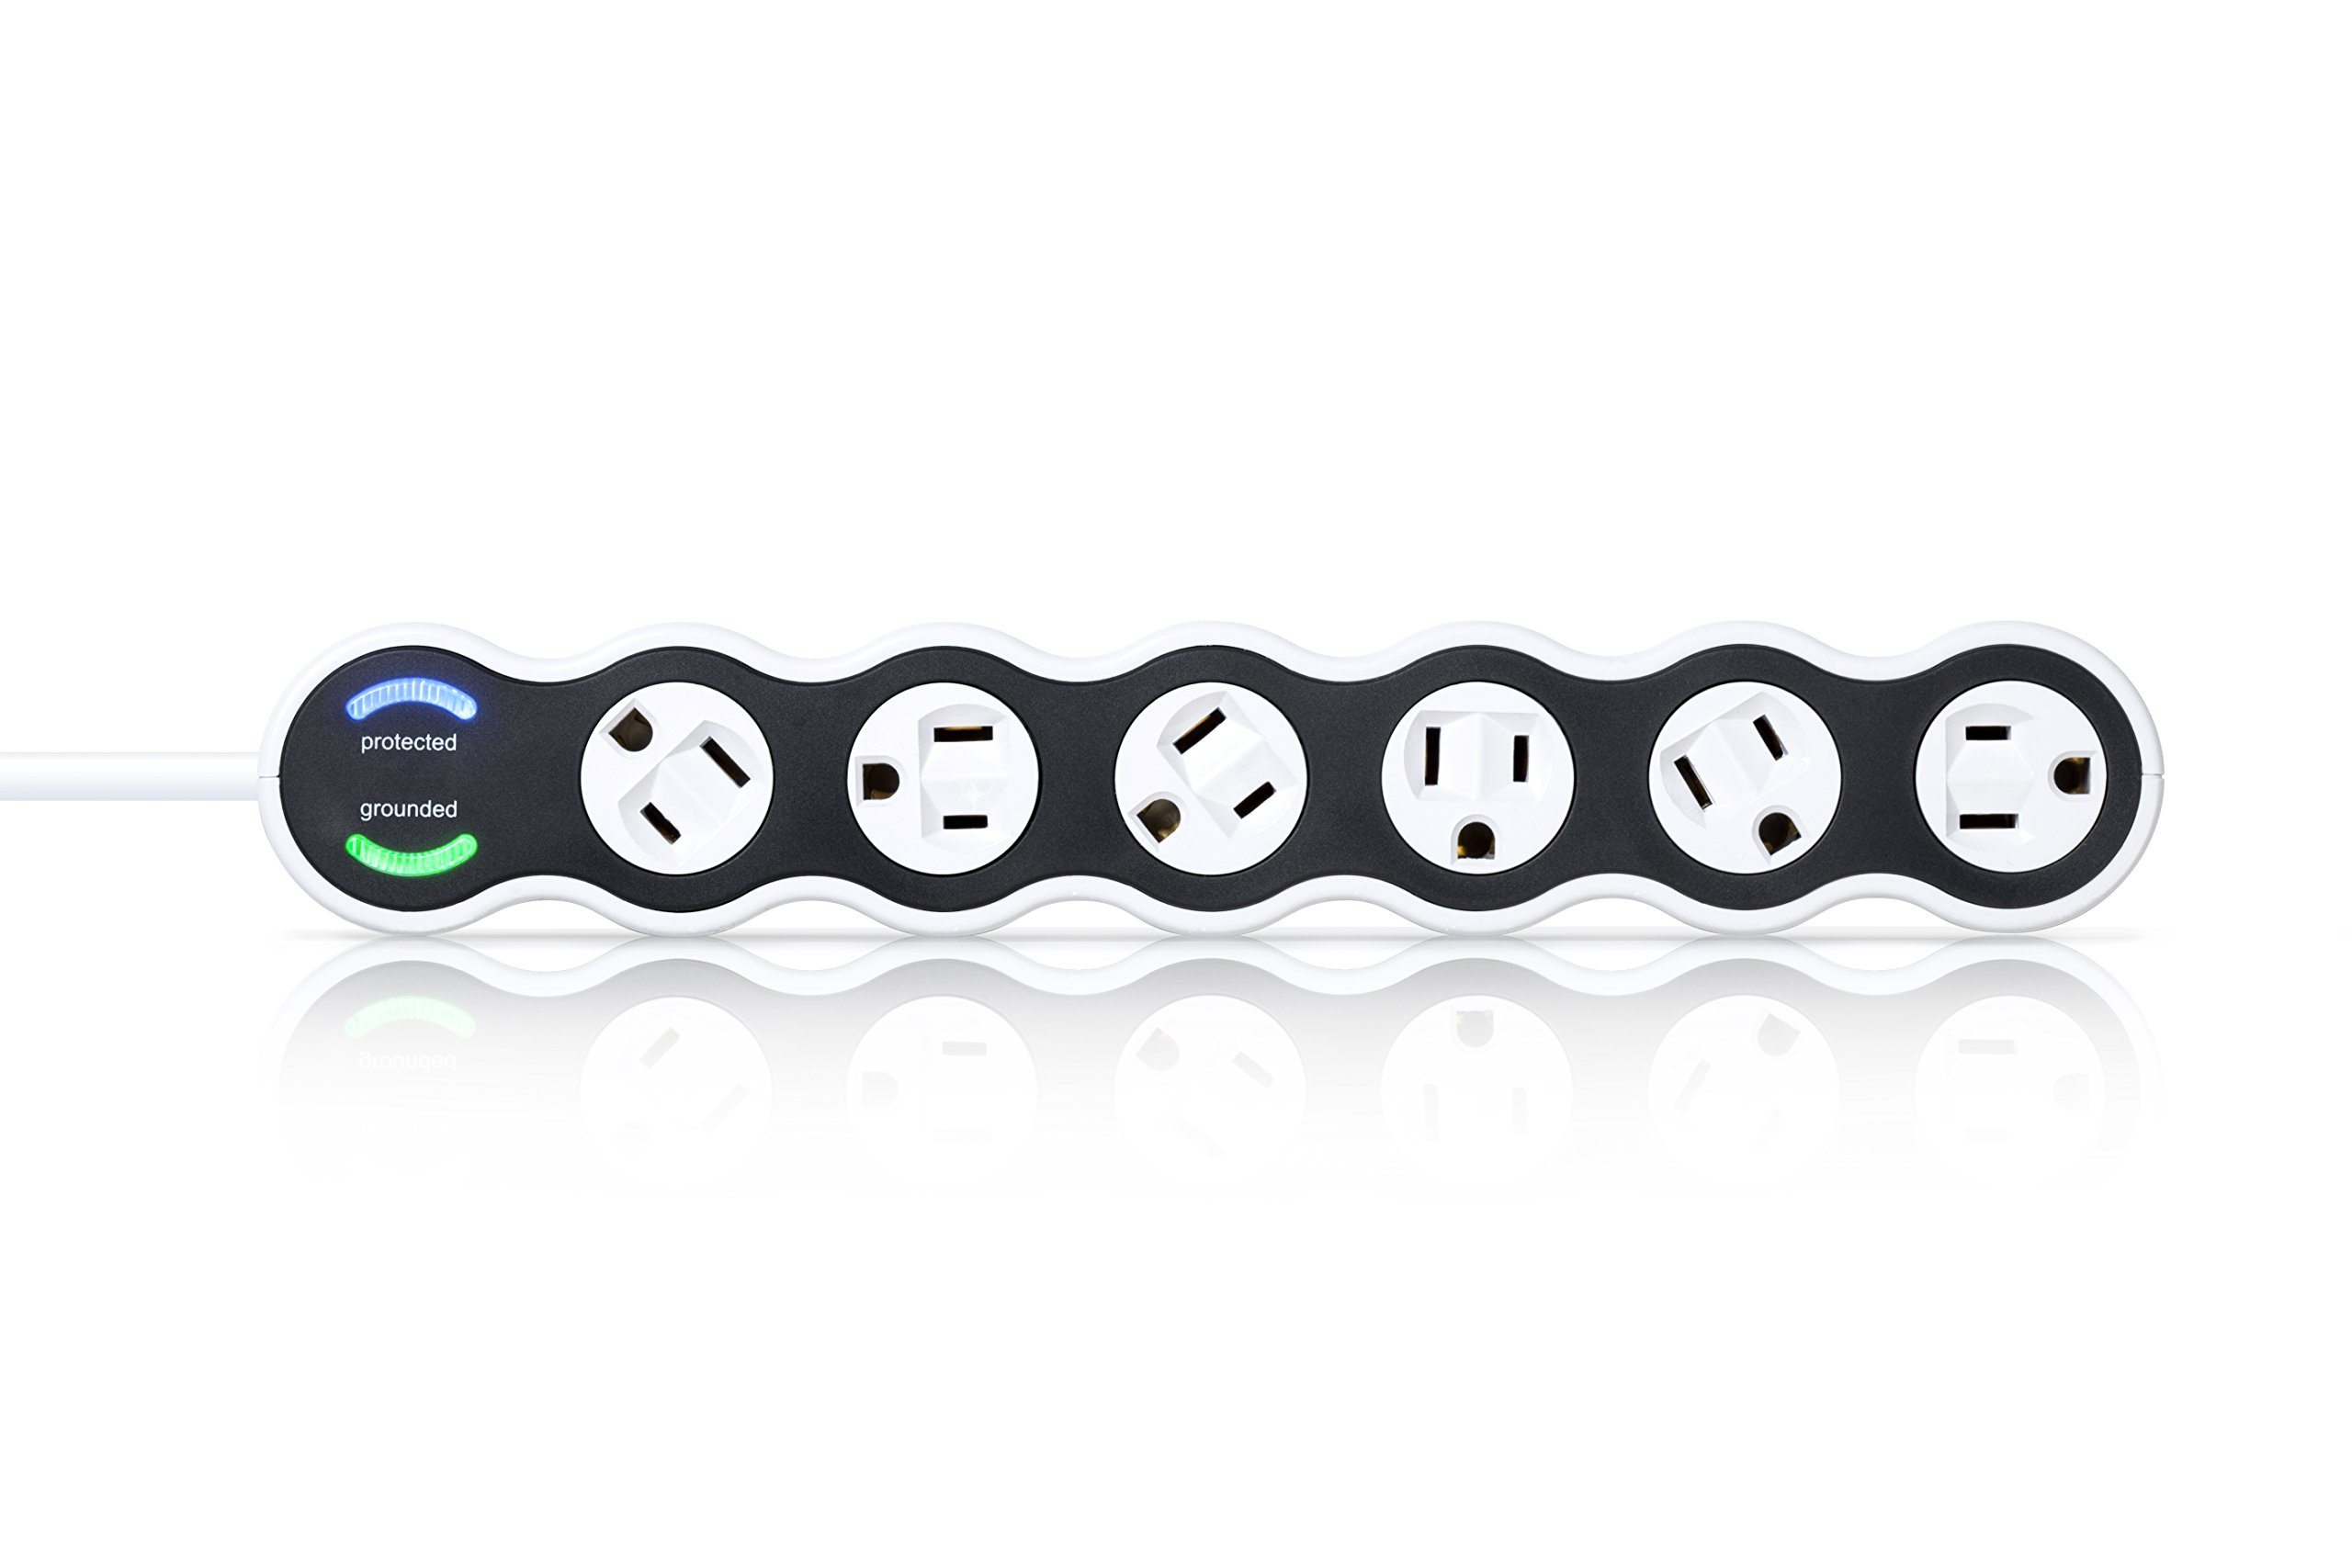 360 Electrical 36051 Power Curve 6 Outlet Surge Protector by 360 Electrical (Image #3)